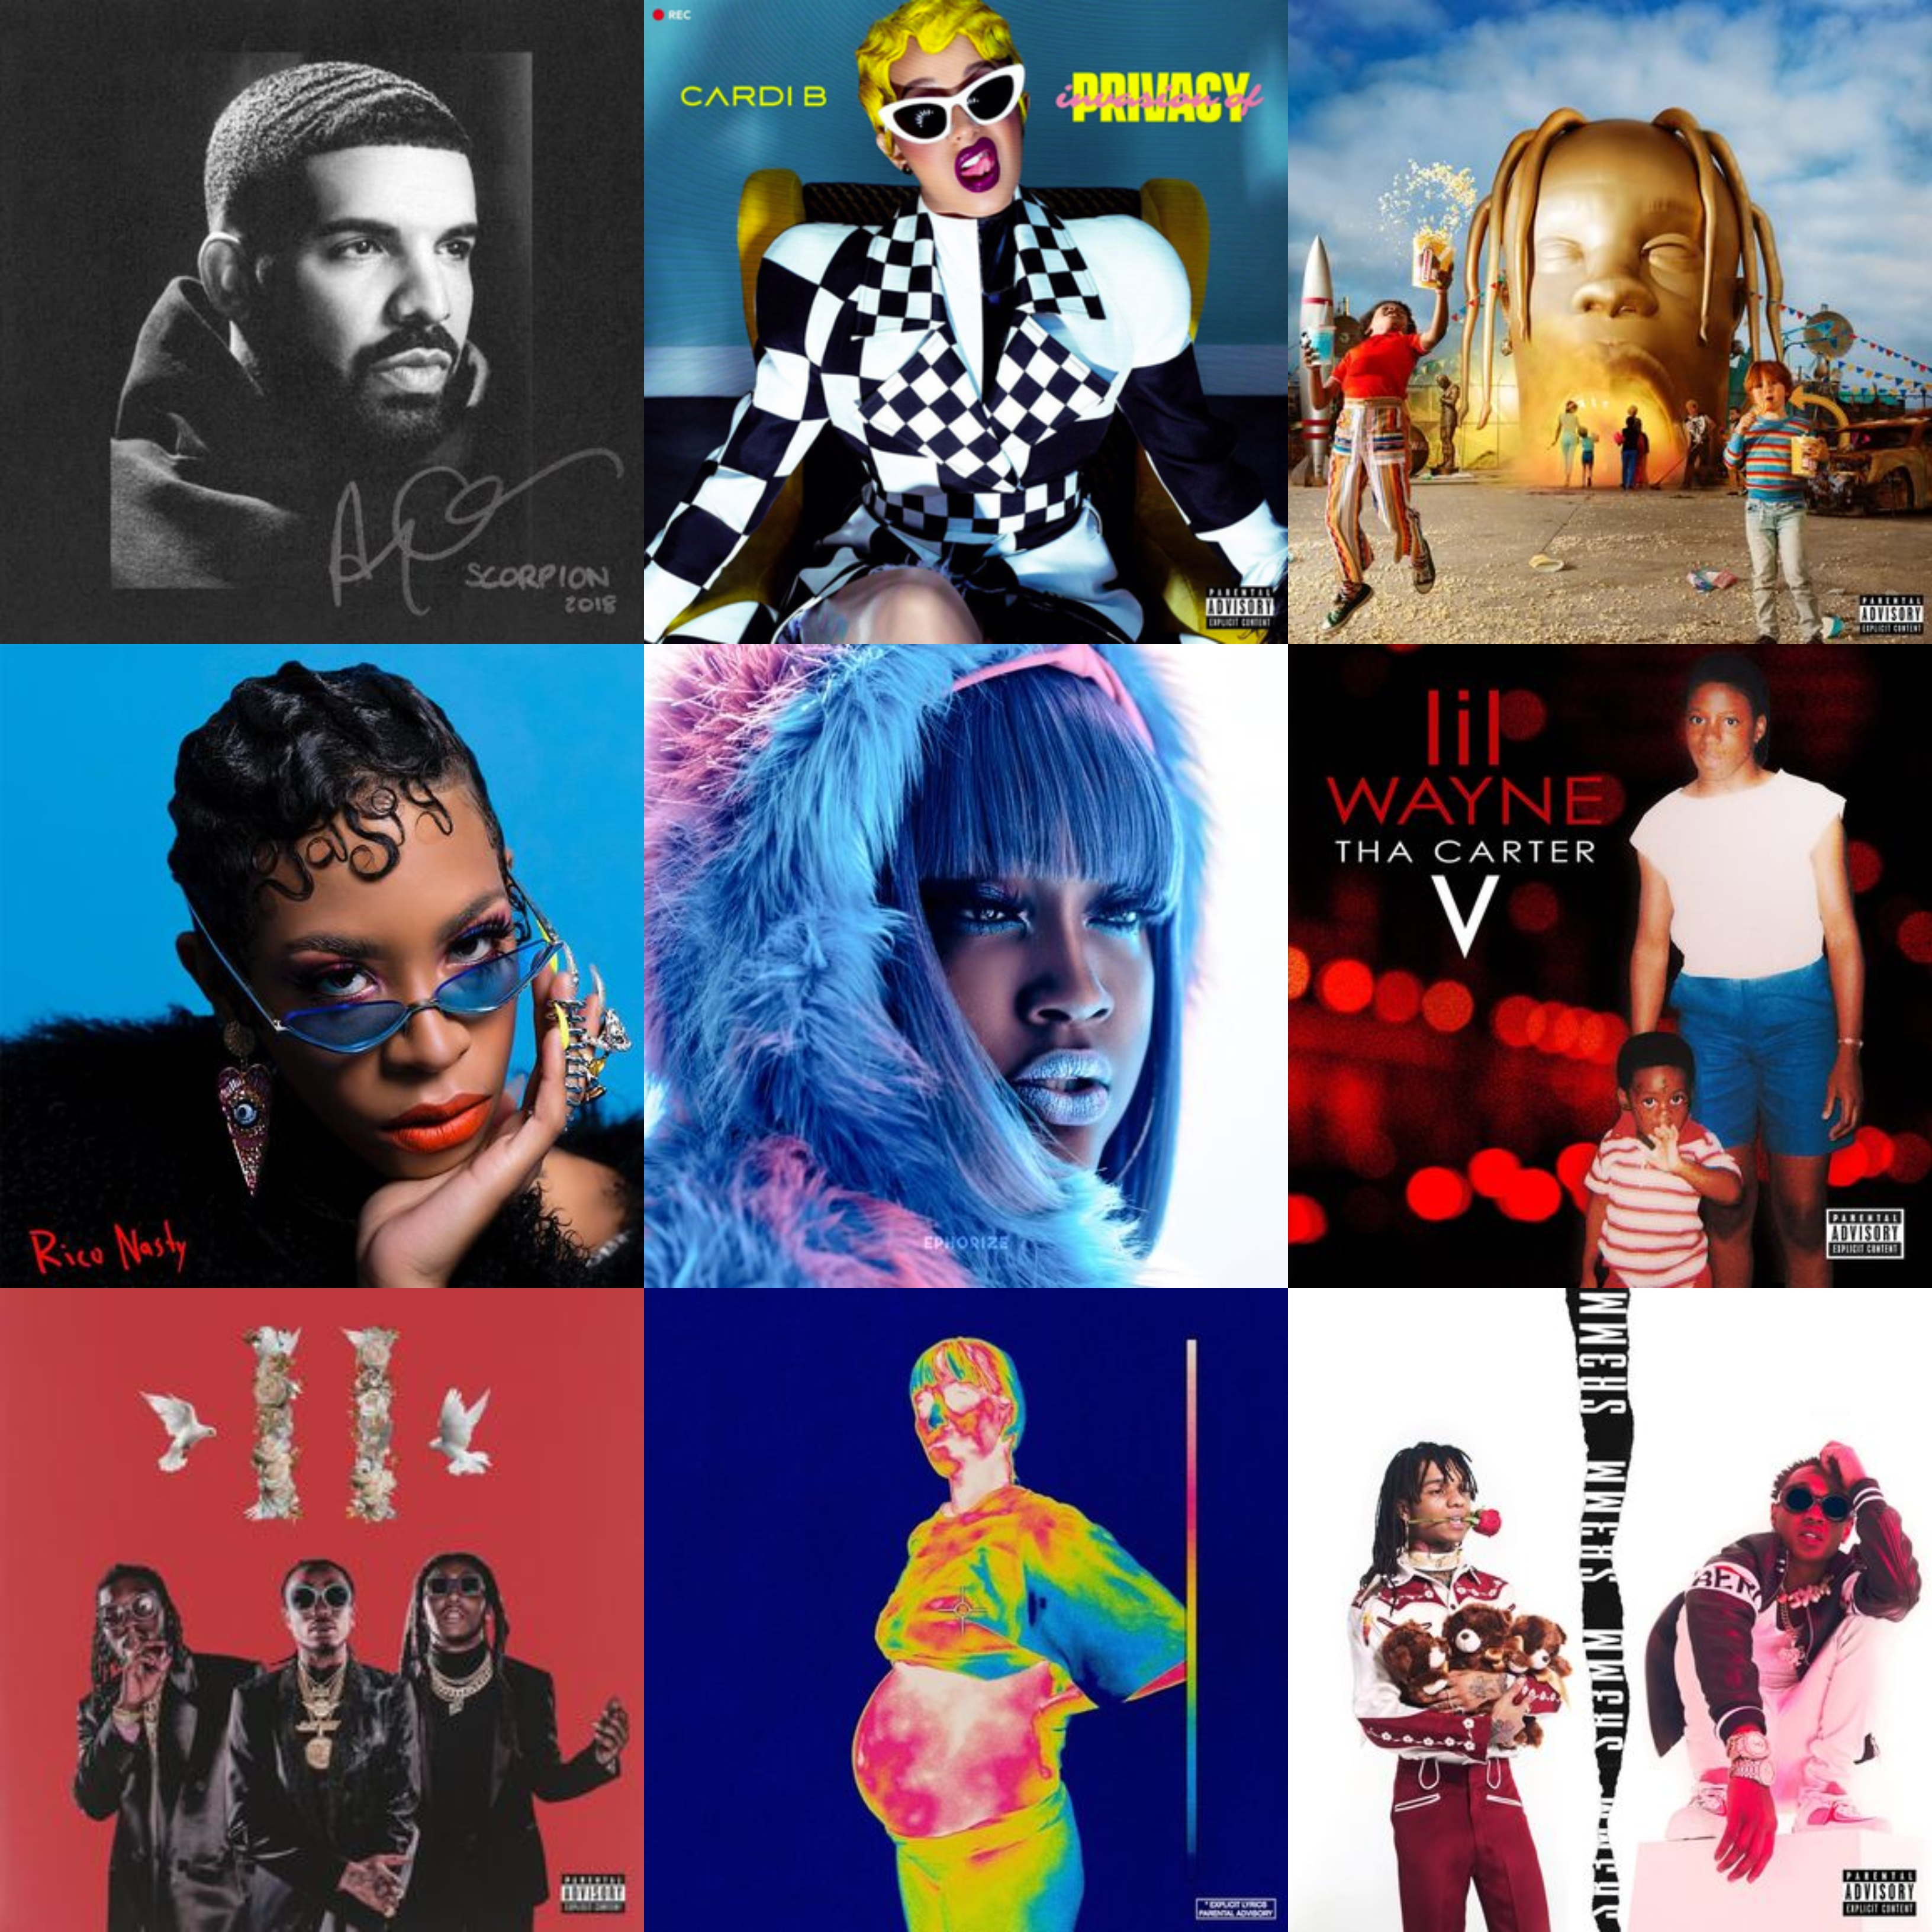 e1cc55ac9982 30 Best Hip-Hop Albums of 2018. This year saw releases from rap's ...